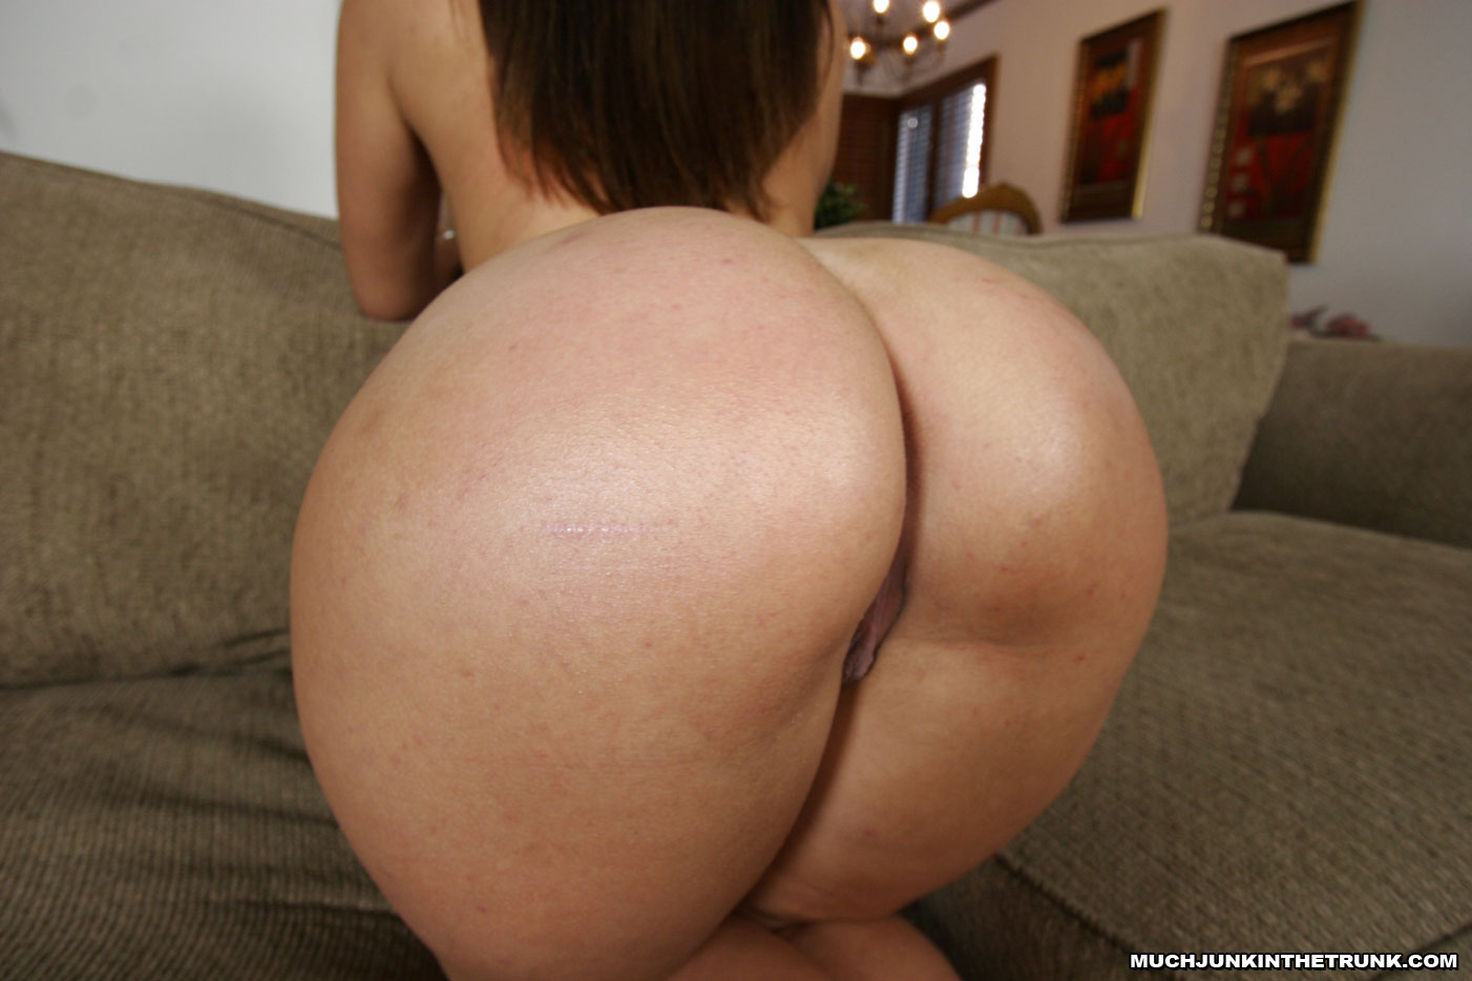 Best big ass free porn